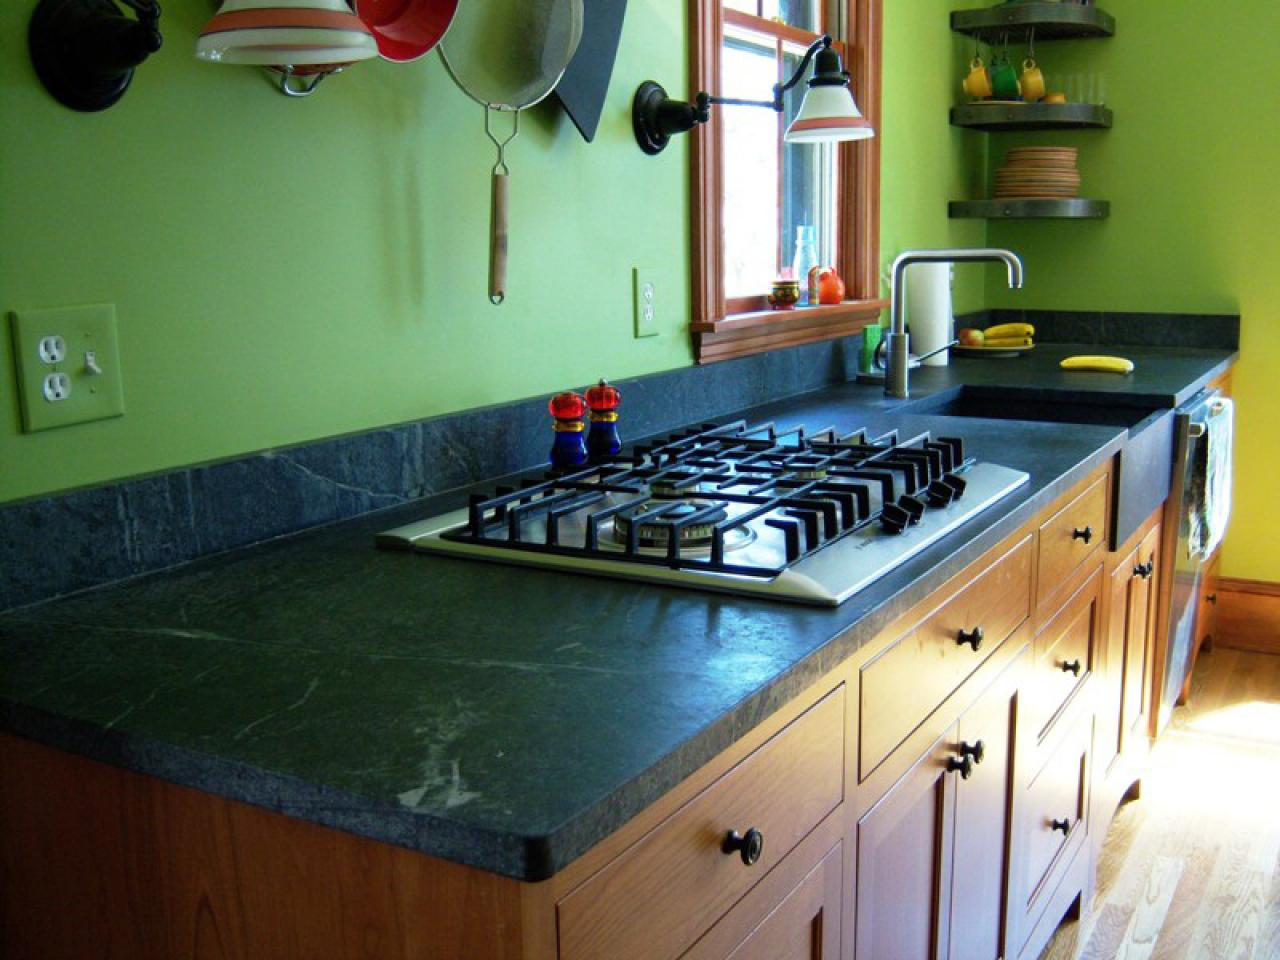 wooden cabinet with black soapstone countertop with modern cooktop beneath green wall design with wall racks